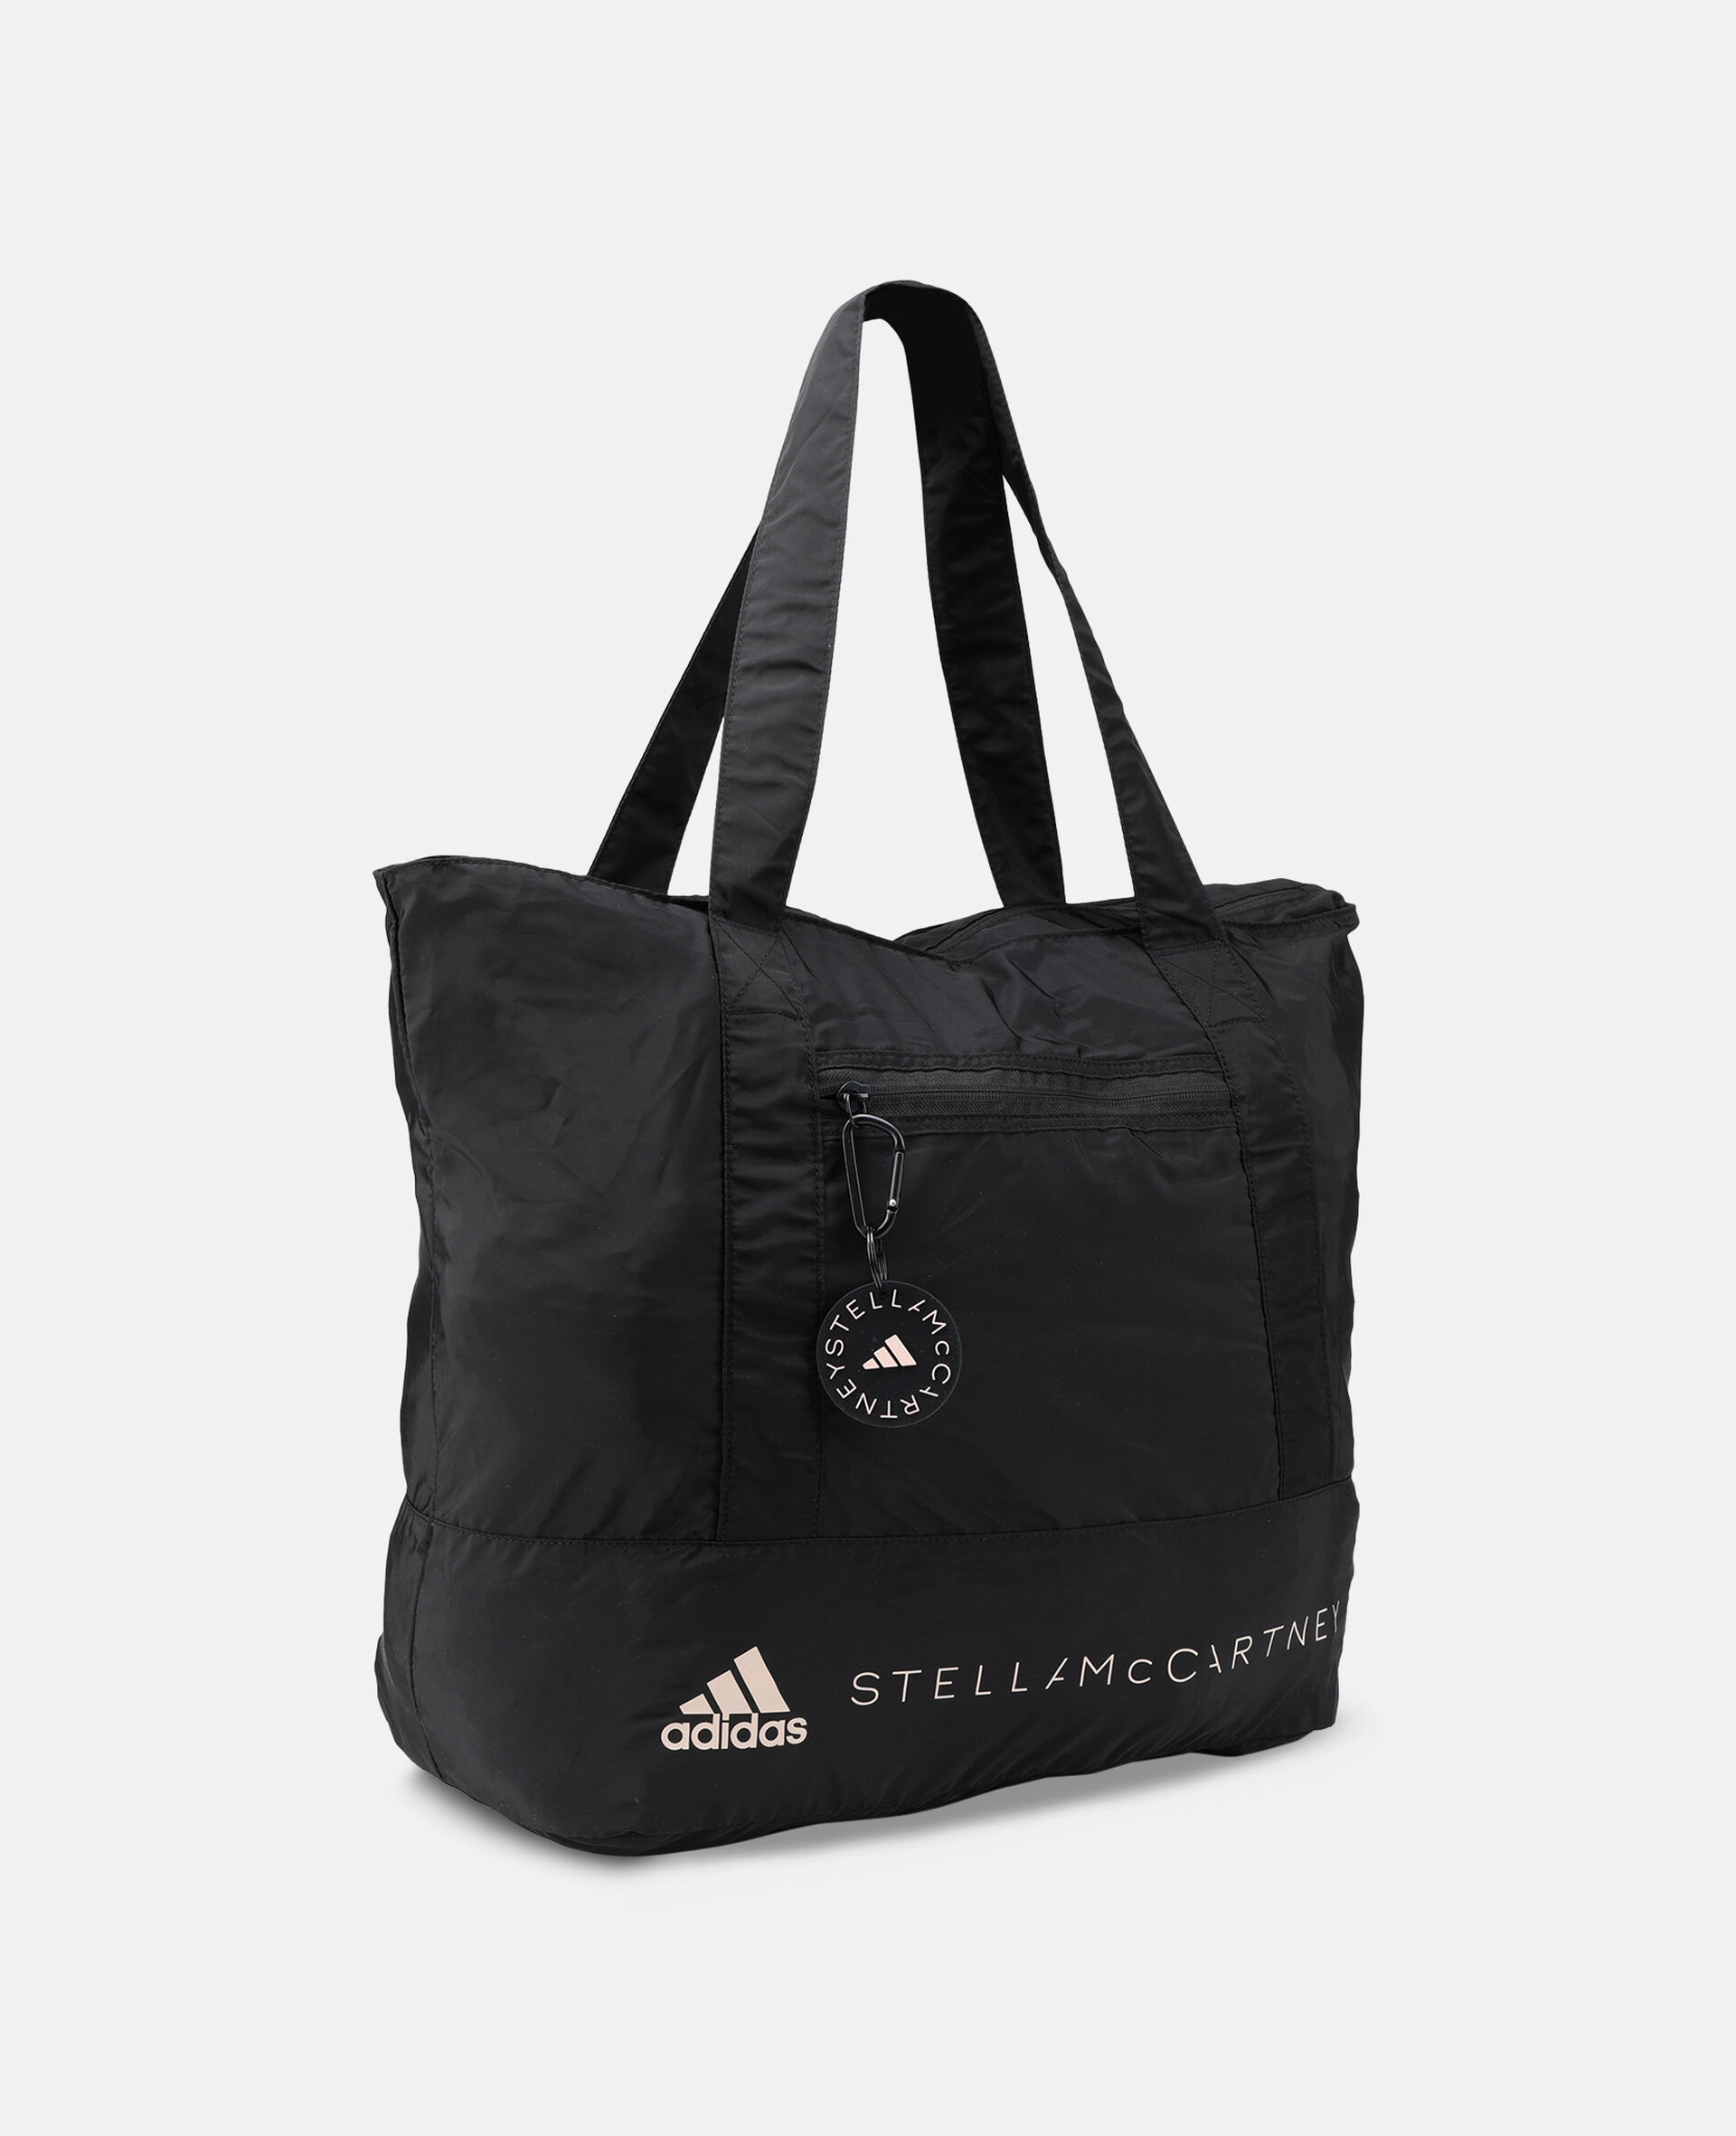 Black Printed Tote Bag -Black-large image number 1